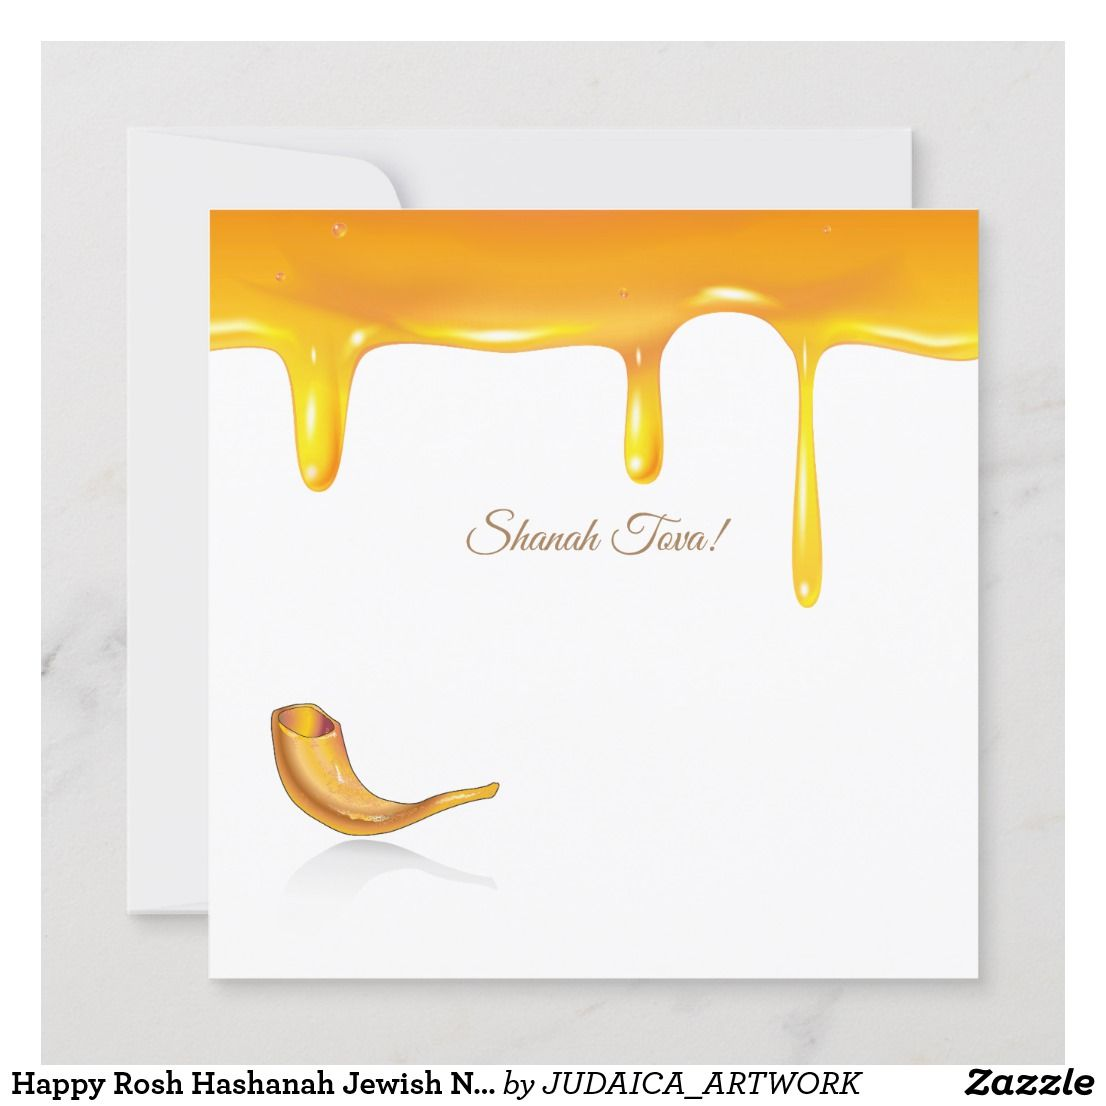 Happy Rosh Hashanah Jewish New Year Greeting Card | Zazzle.com #shanatovacards